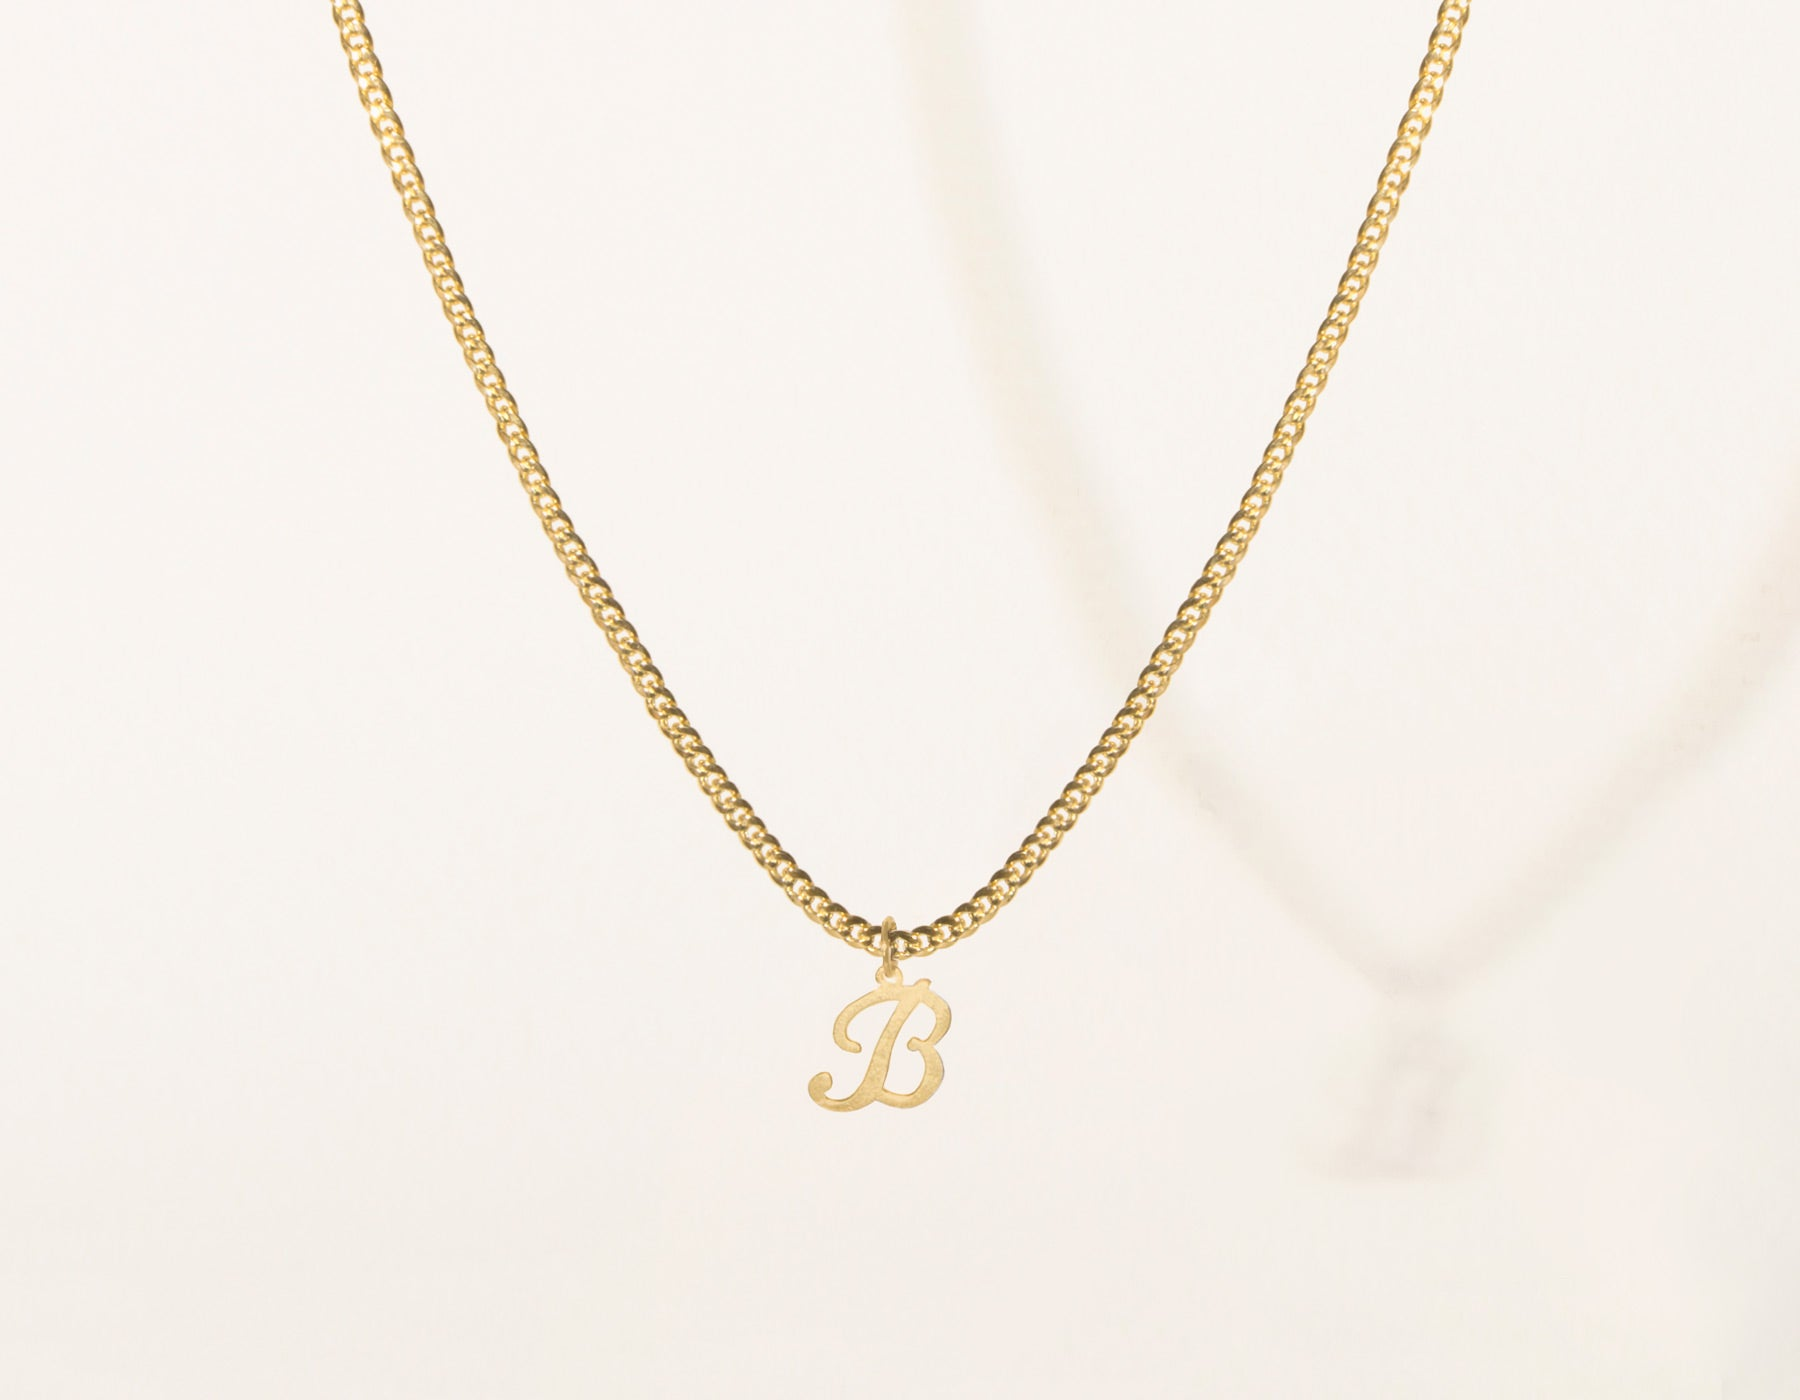 buy chain pdp jewmeenaz plated american diamond product cz letter paytm heart and jewellery alphabet catalog in images set with love for men locket women gold pendant gifts valentine com meenaz s